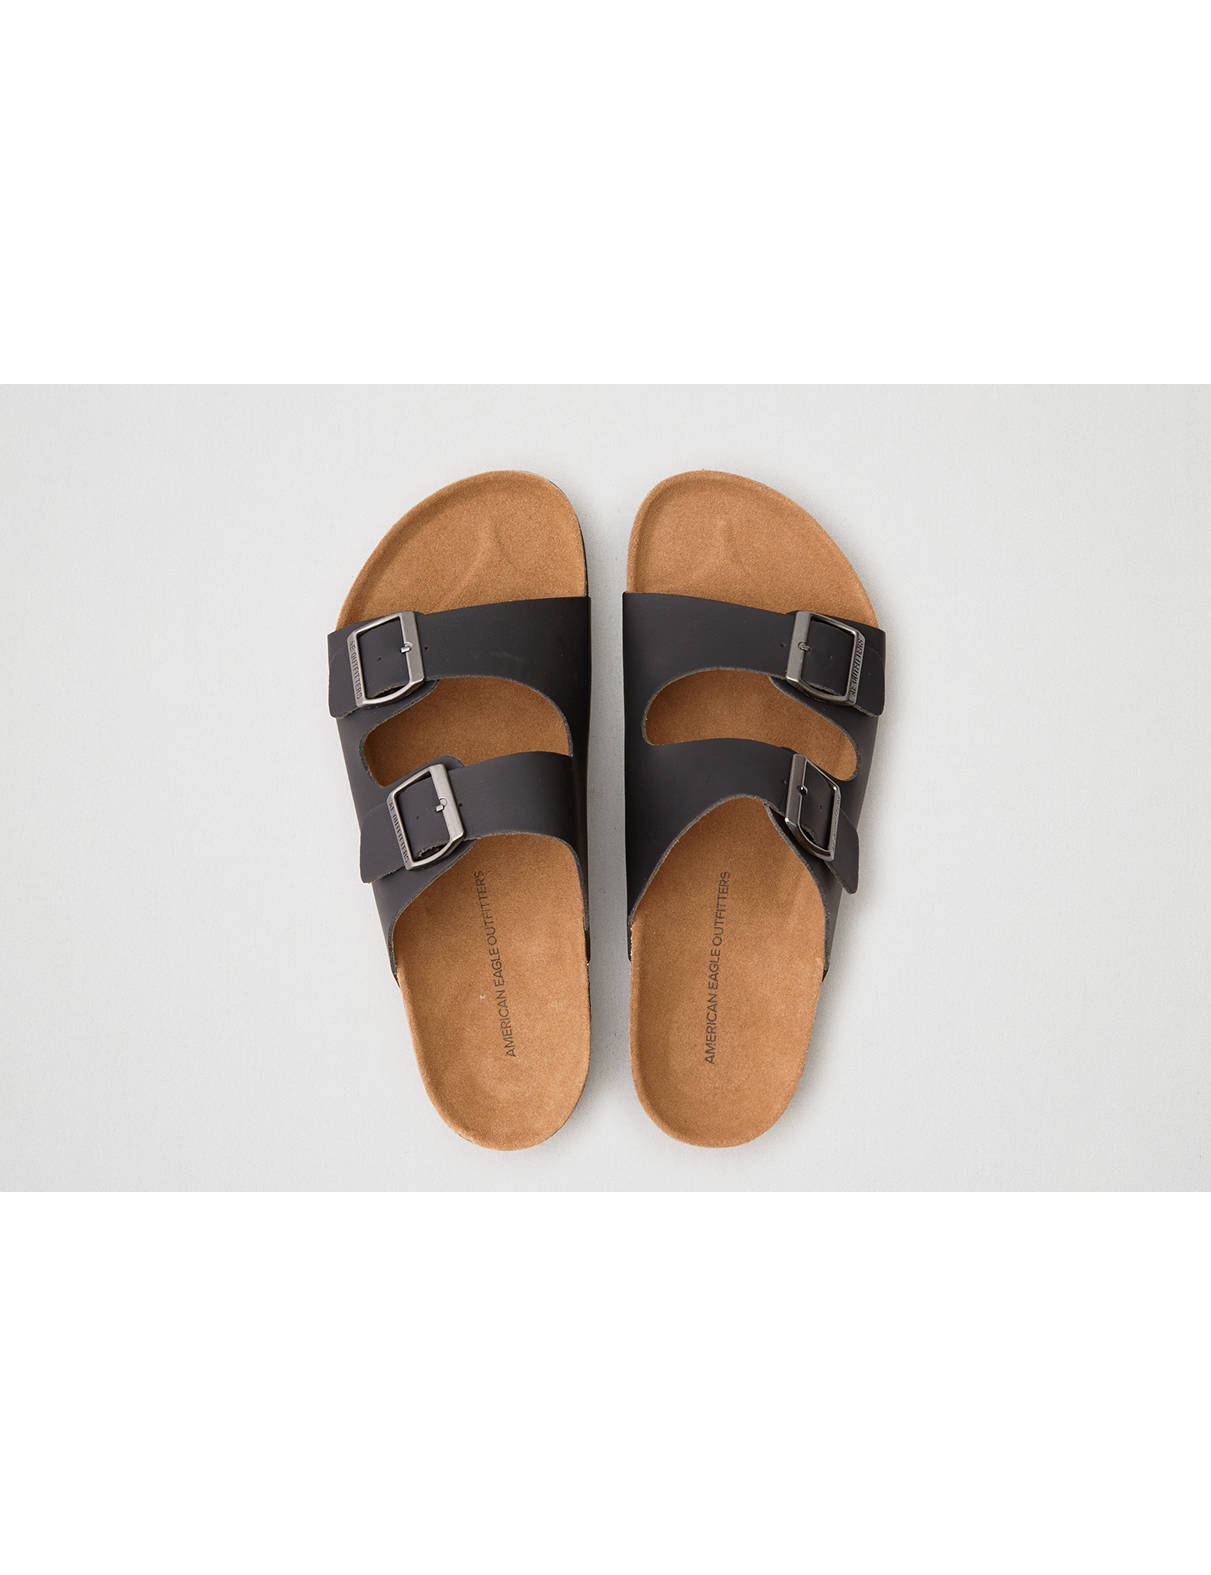 Black sandals ultima online - Display Product Reviews For Aeo Double Buckle Sandal